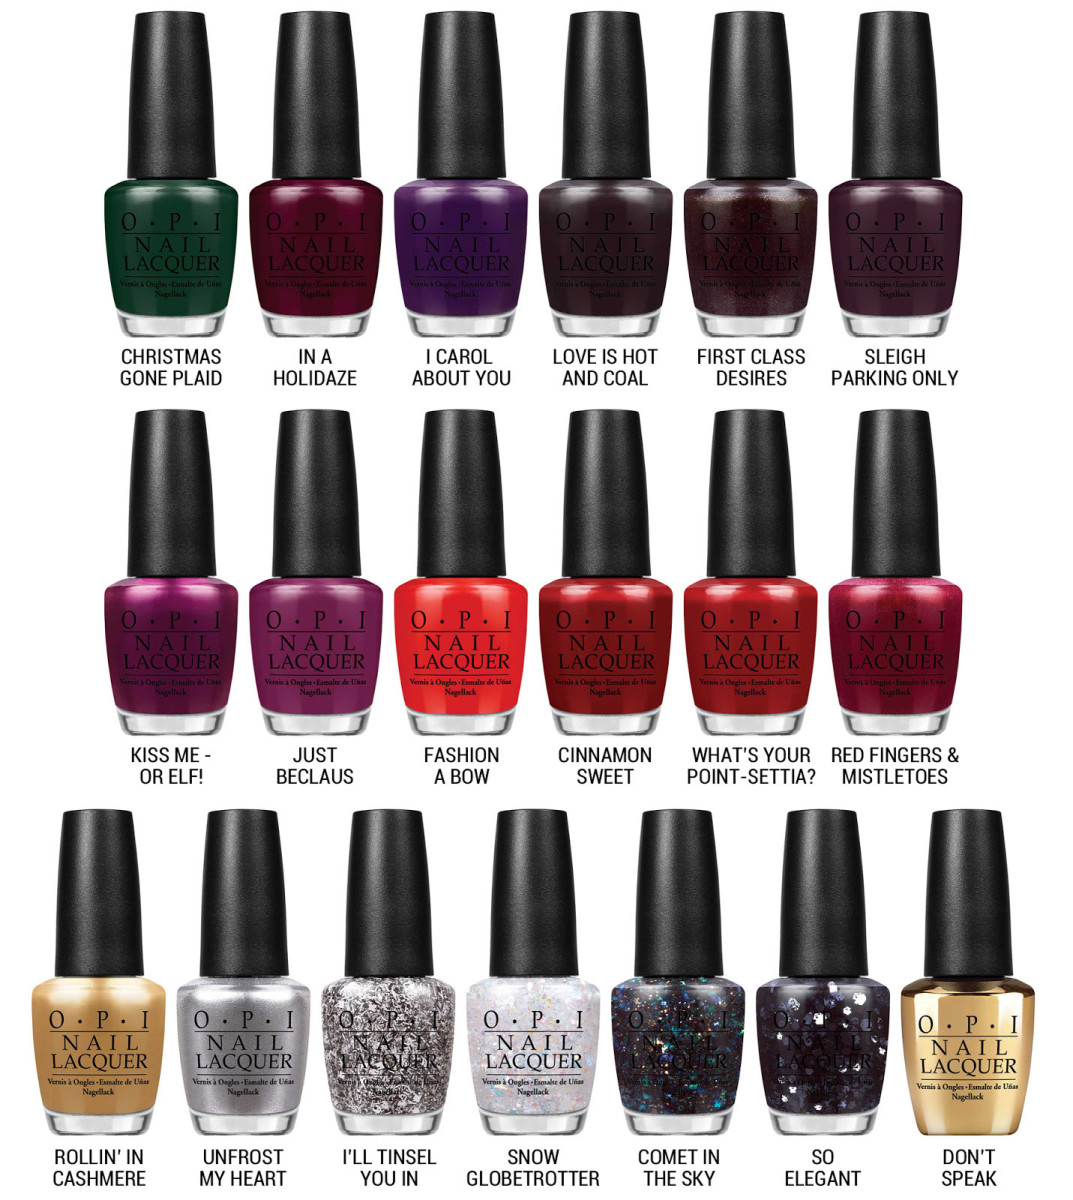 OPI Holiday 2014 Collection